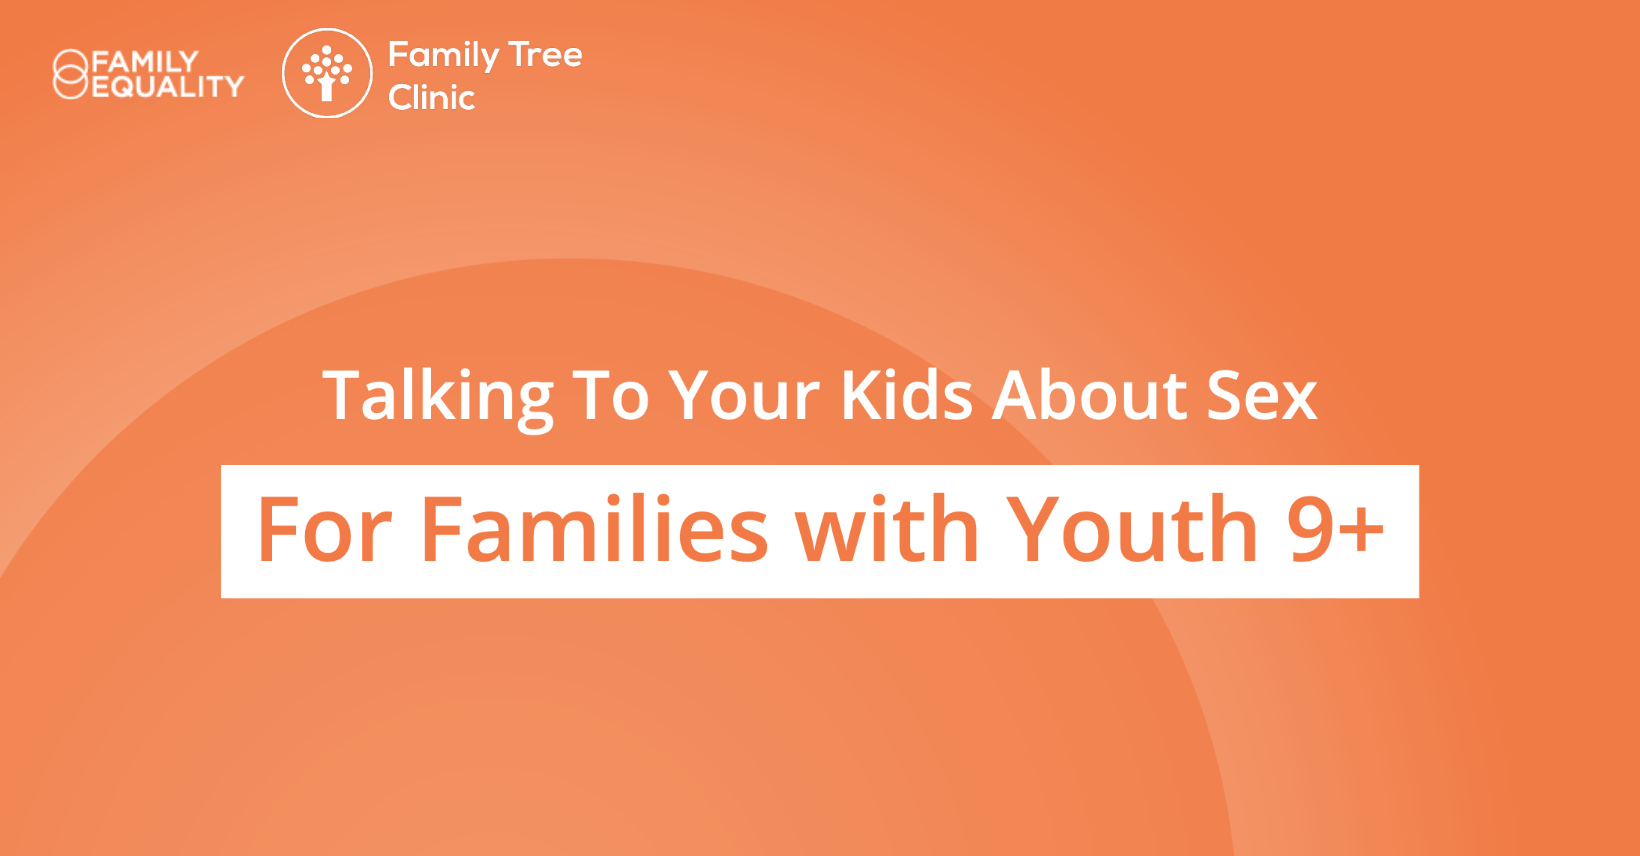 Talking to Your Kids About Sex for Families with Youth Ages 9+